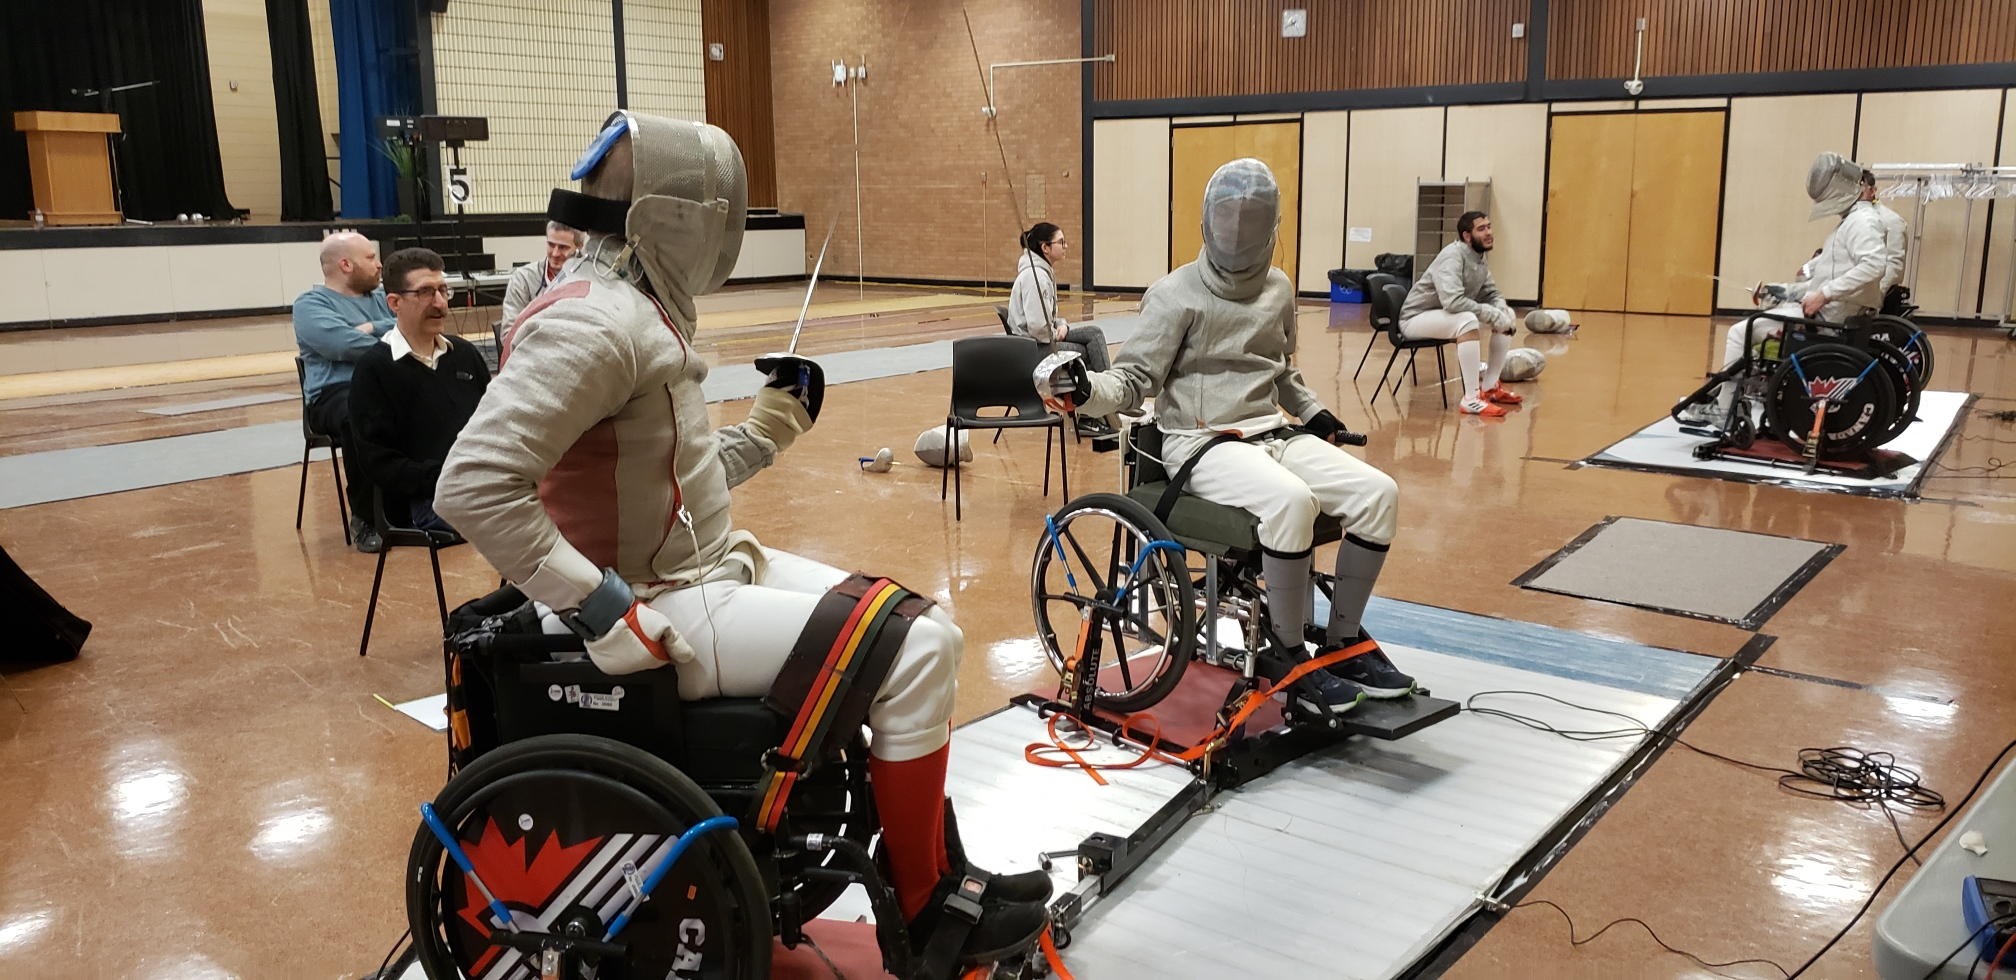 two people fencing in wheelchairs facing each other